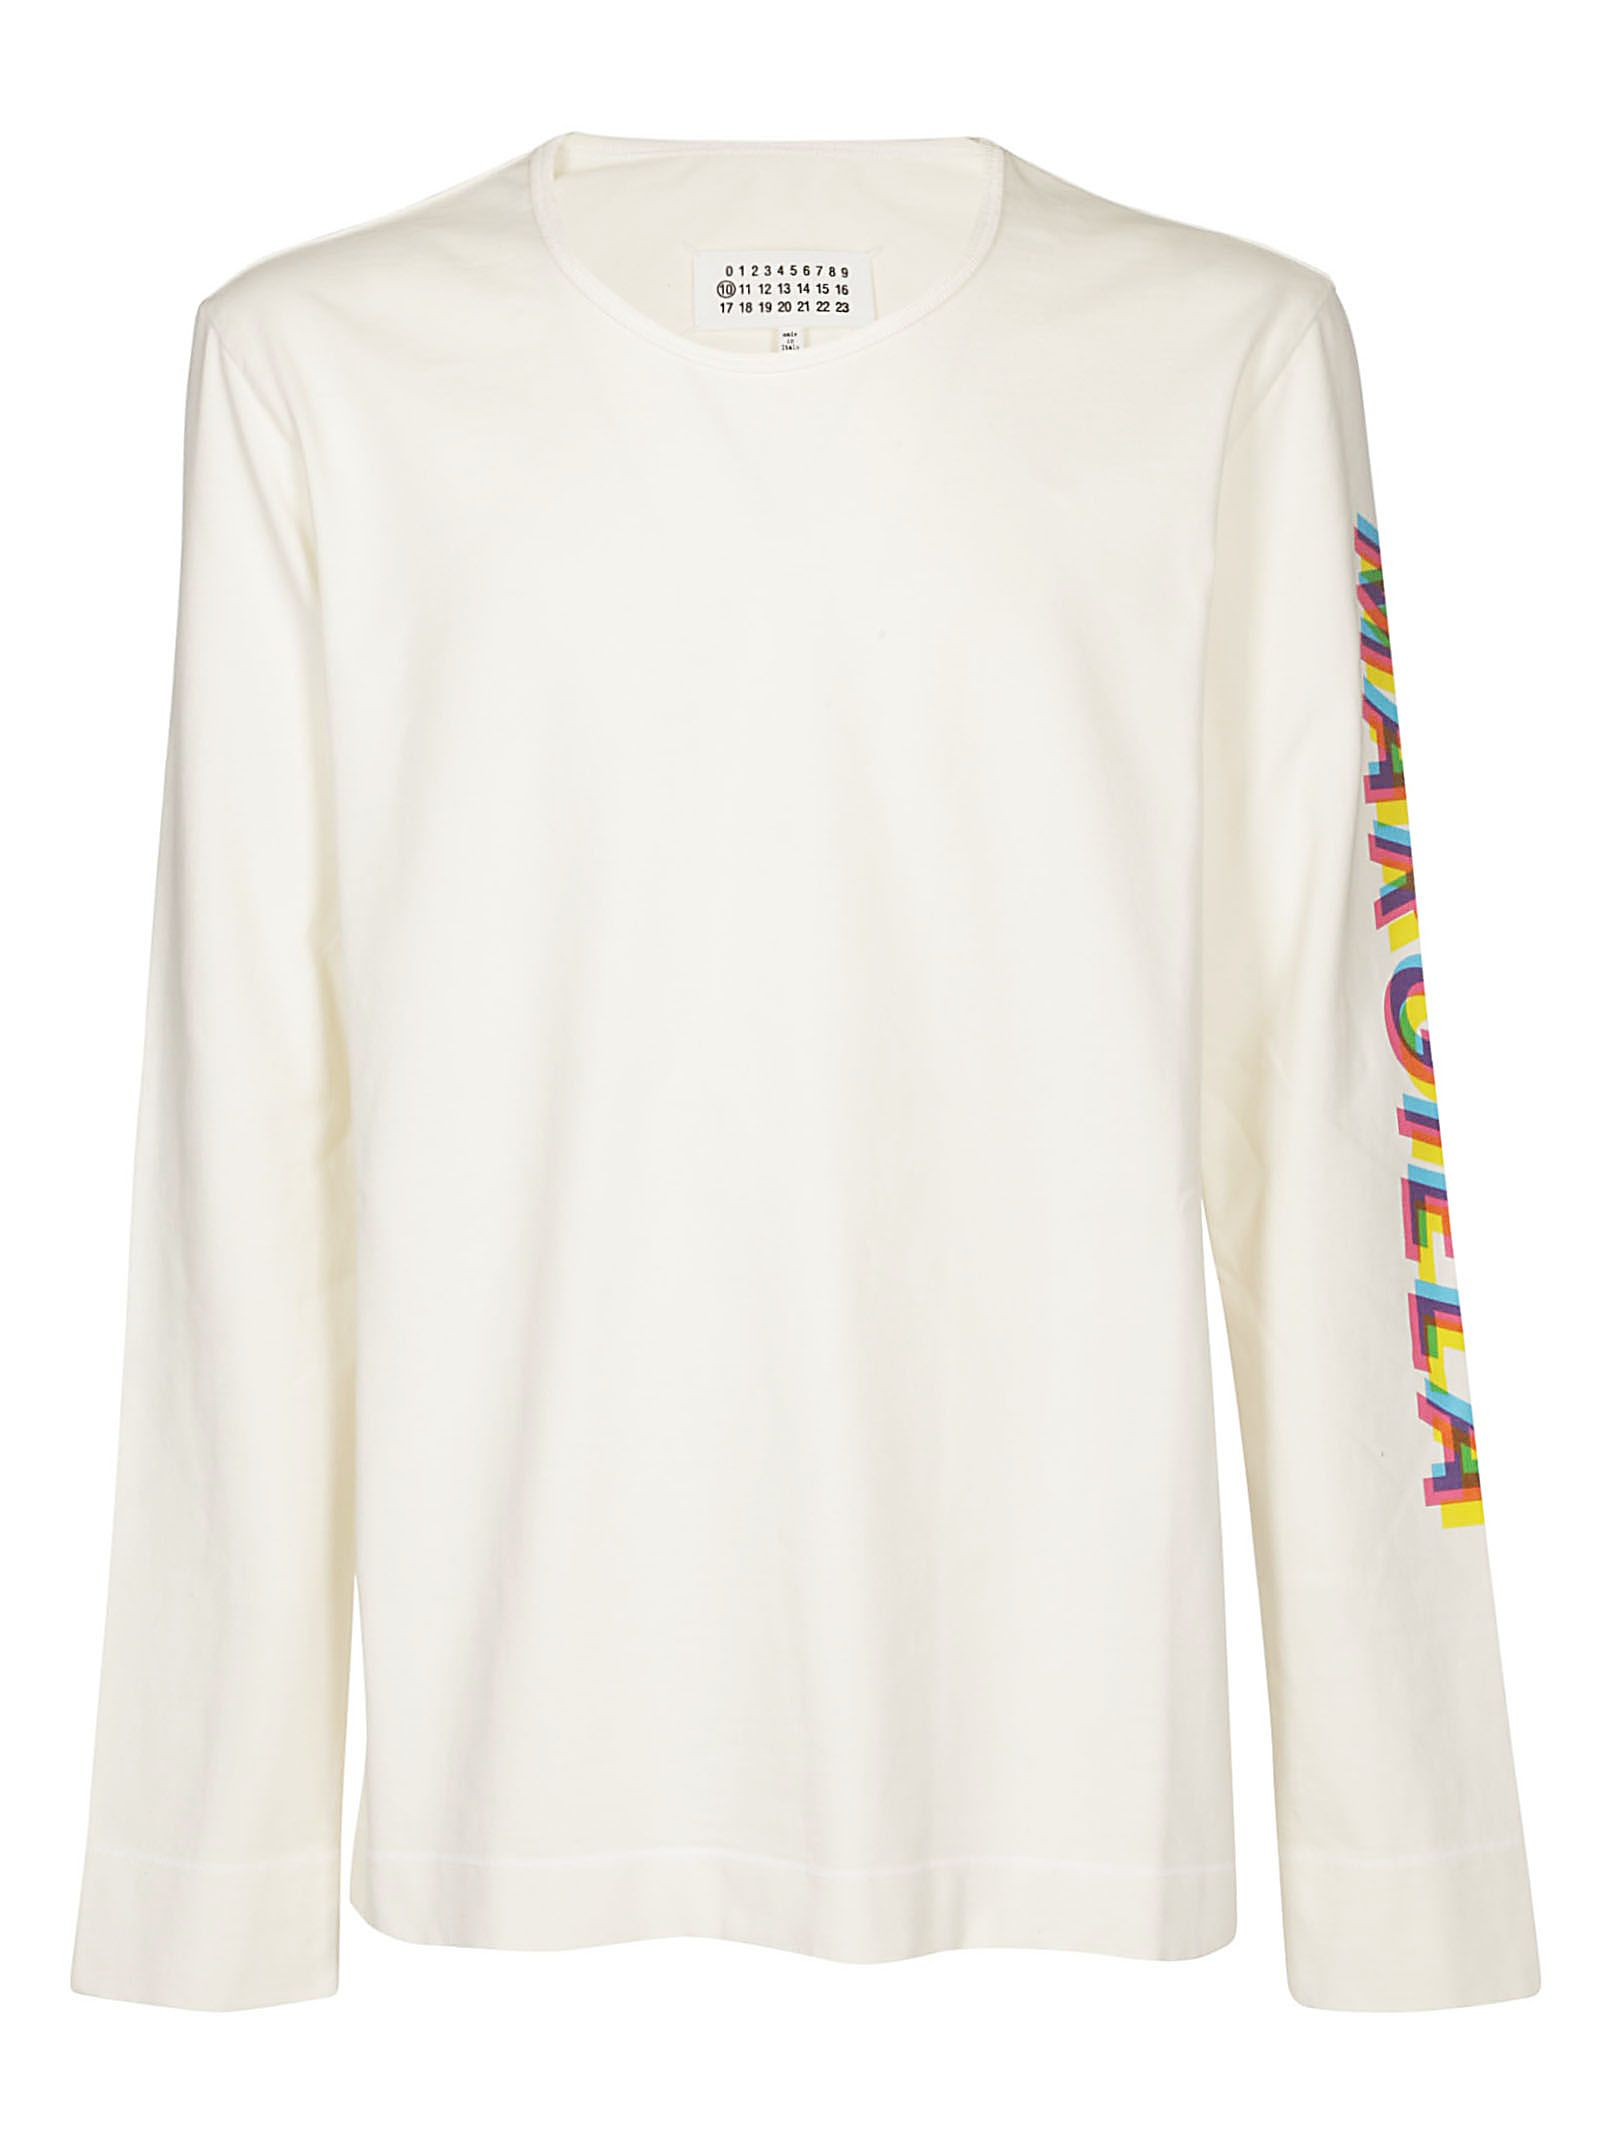 Maison Margiela Sleeve Logo Print Long-sleeved T-shirt